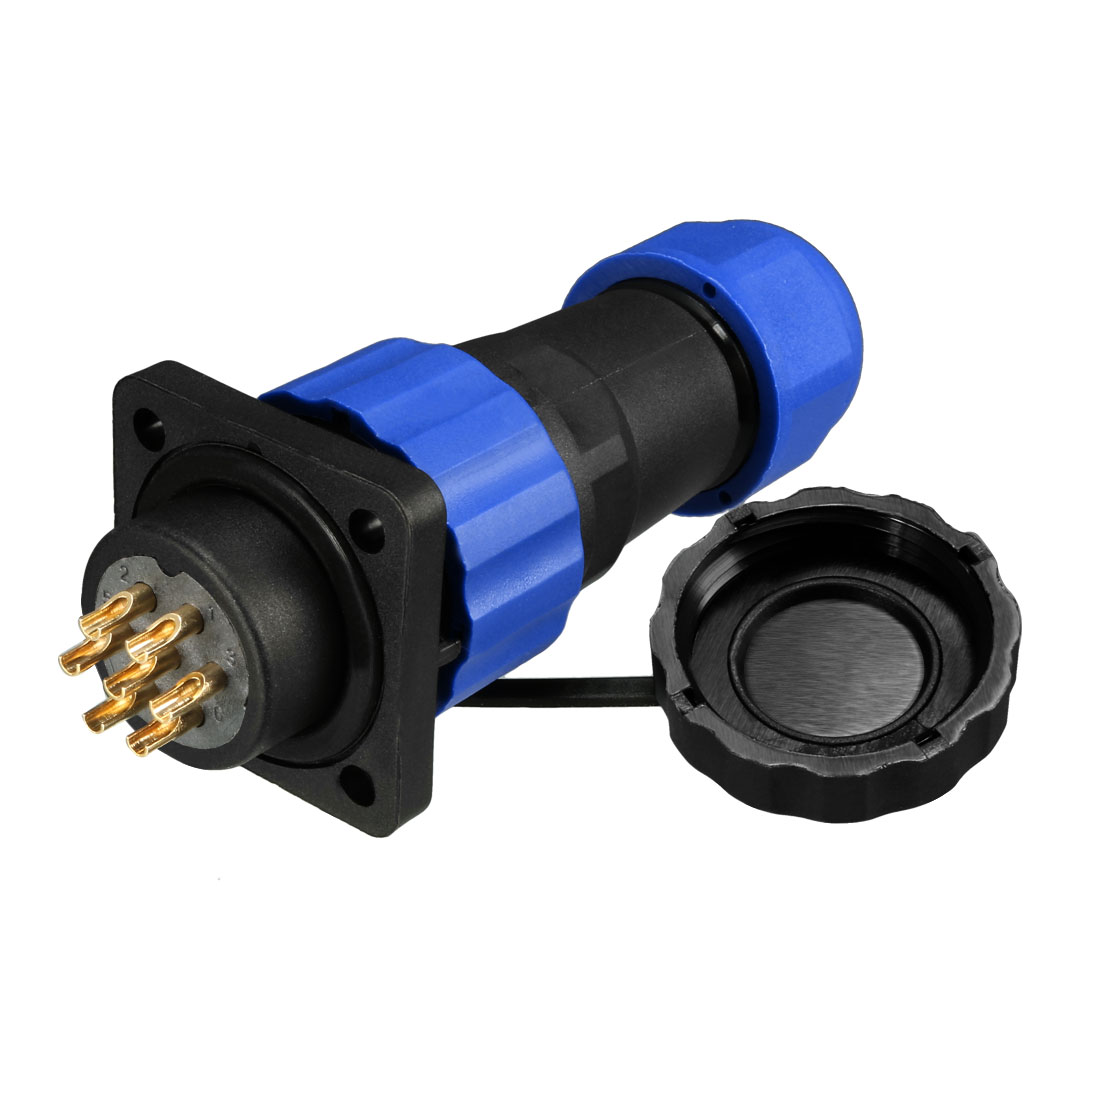 Aviation Connector, 7P 20.5mm 10A 380V SD20-7 Waterproof Male Line Panel Power